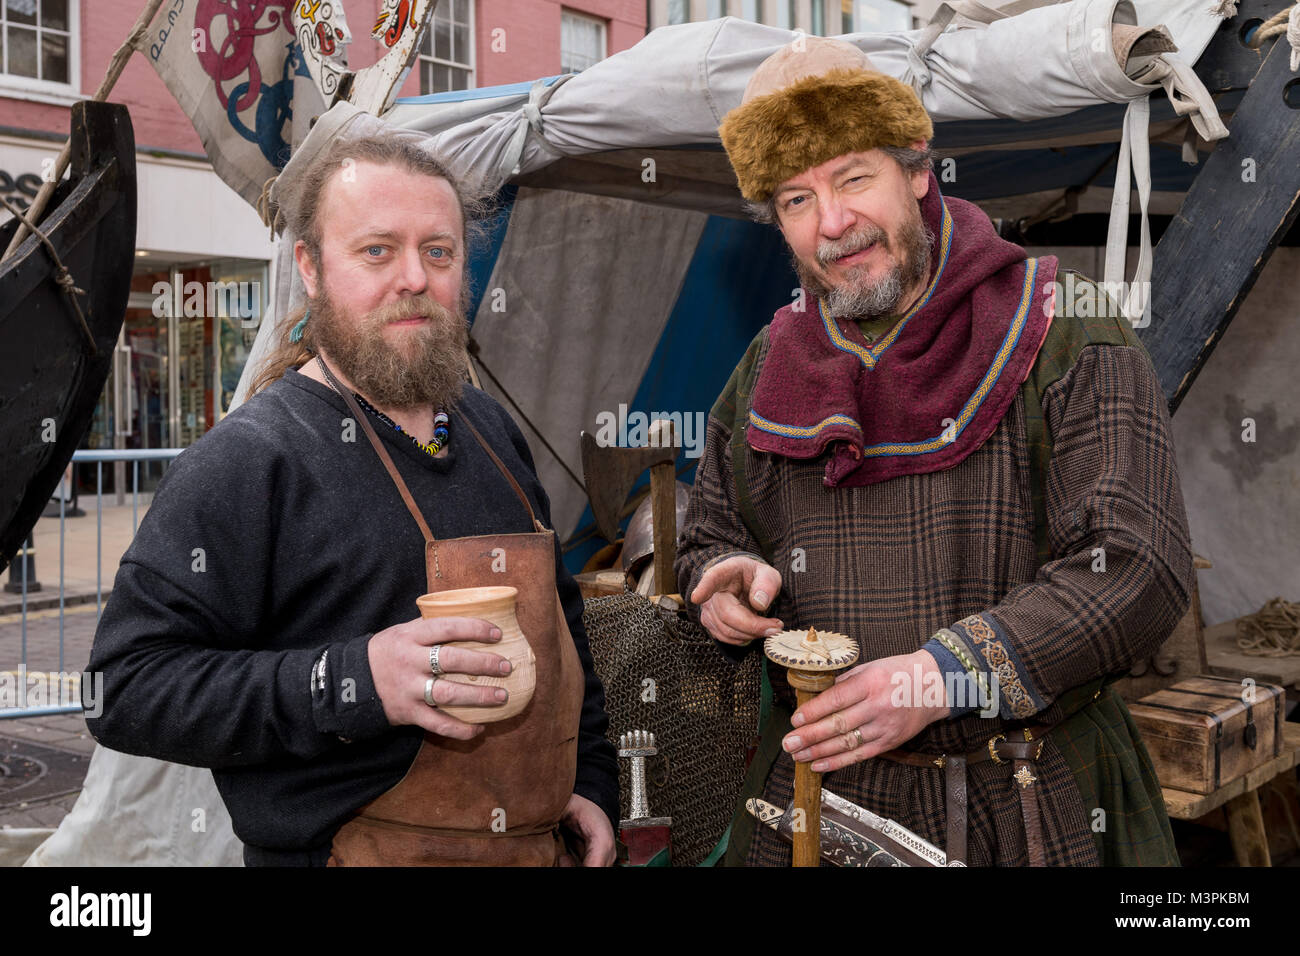 York, UK, 12th February 2018, People dressed as Vikings at the annual Jorvik Viking Festival. These 2 men are standing - Stock Image